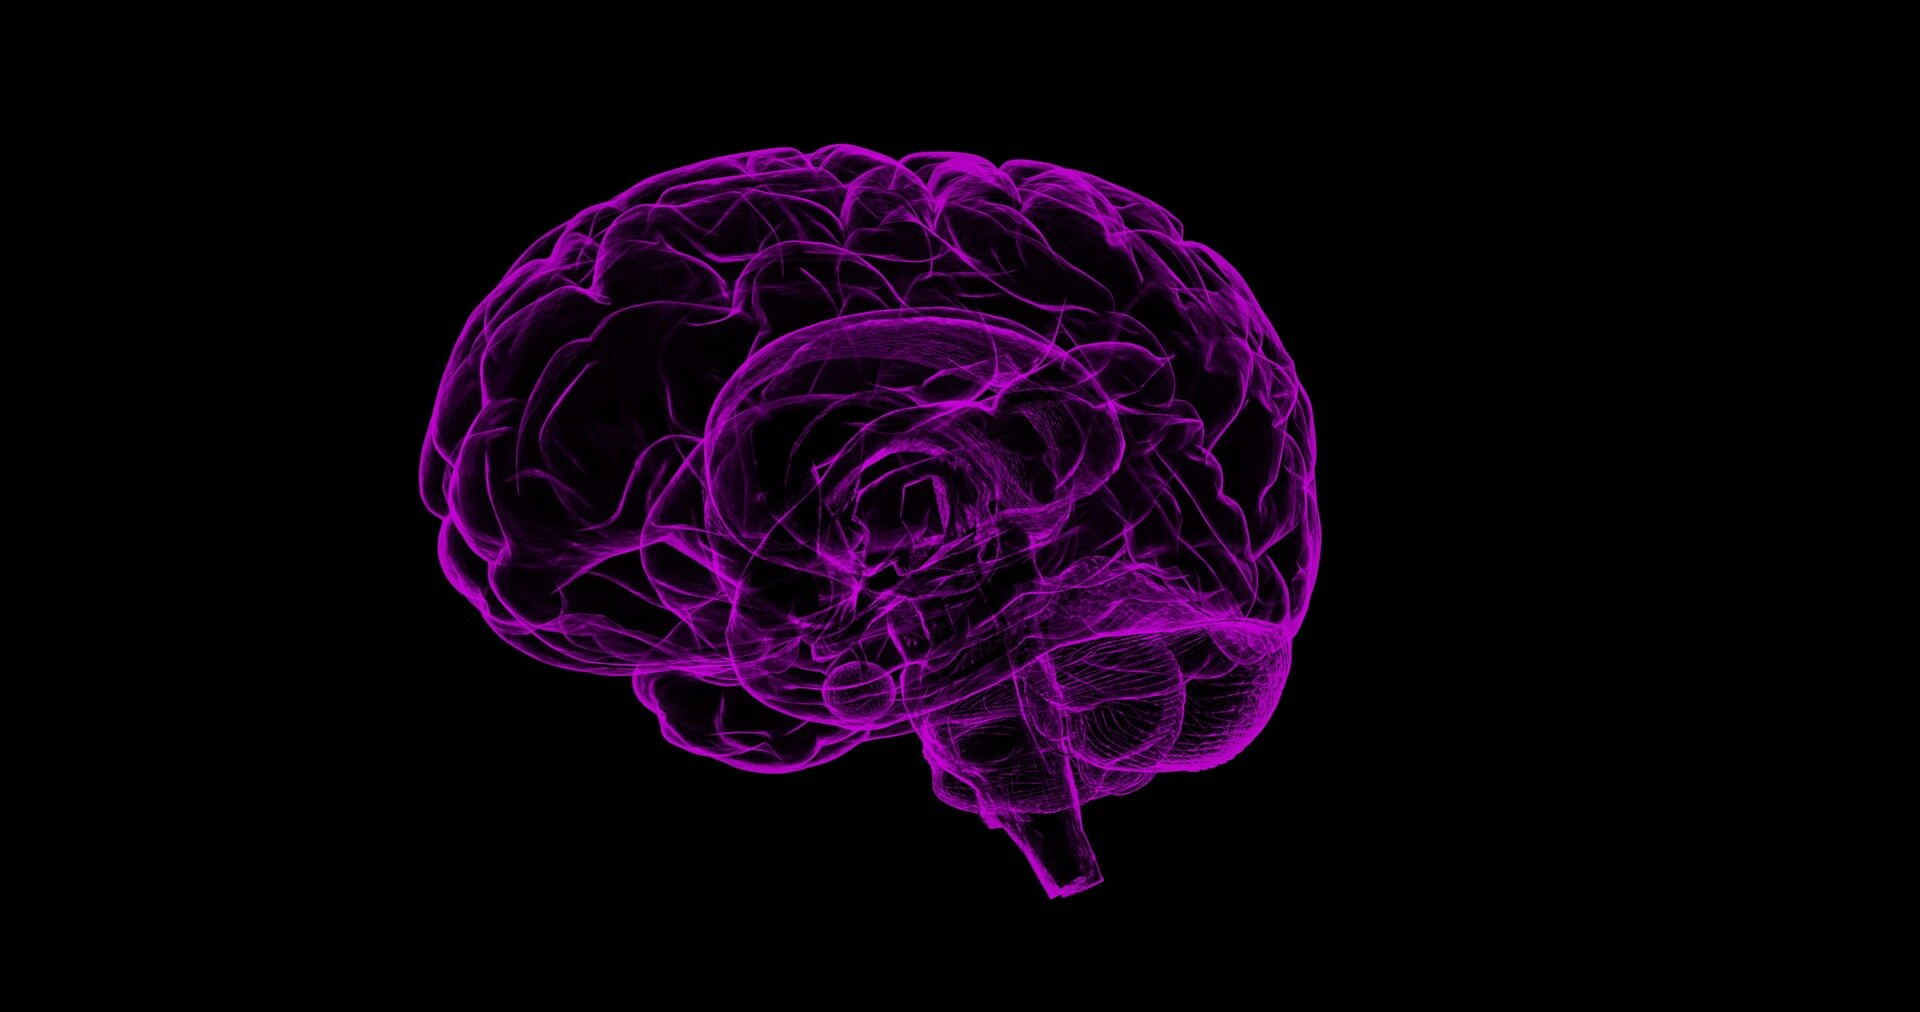 Mapping the relay networks of our brain